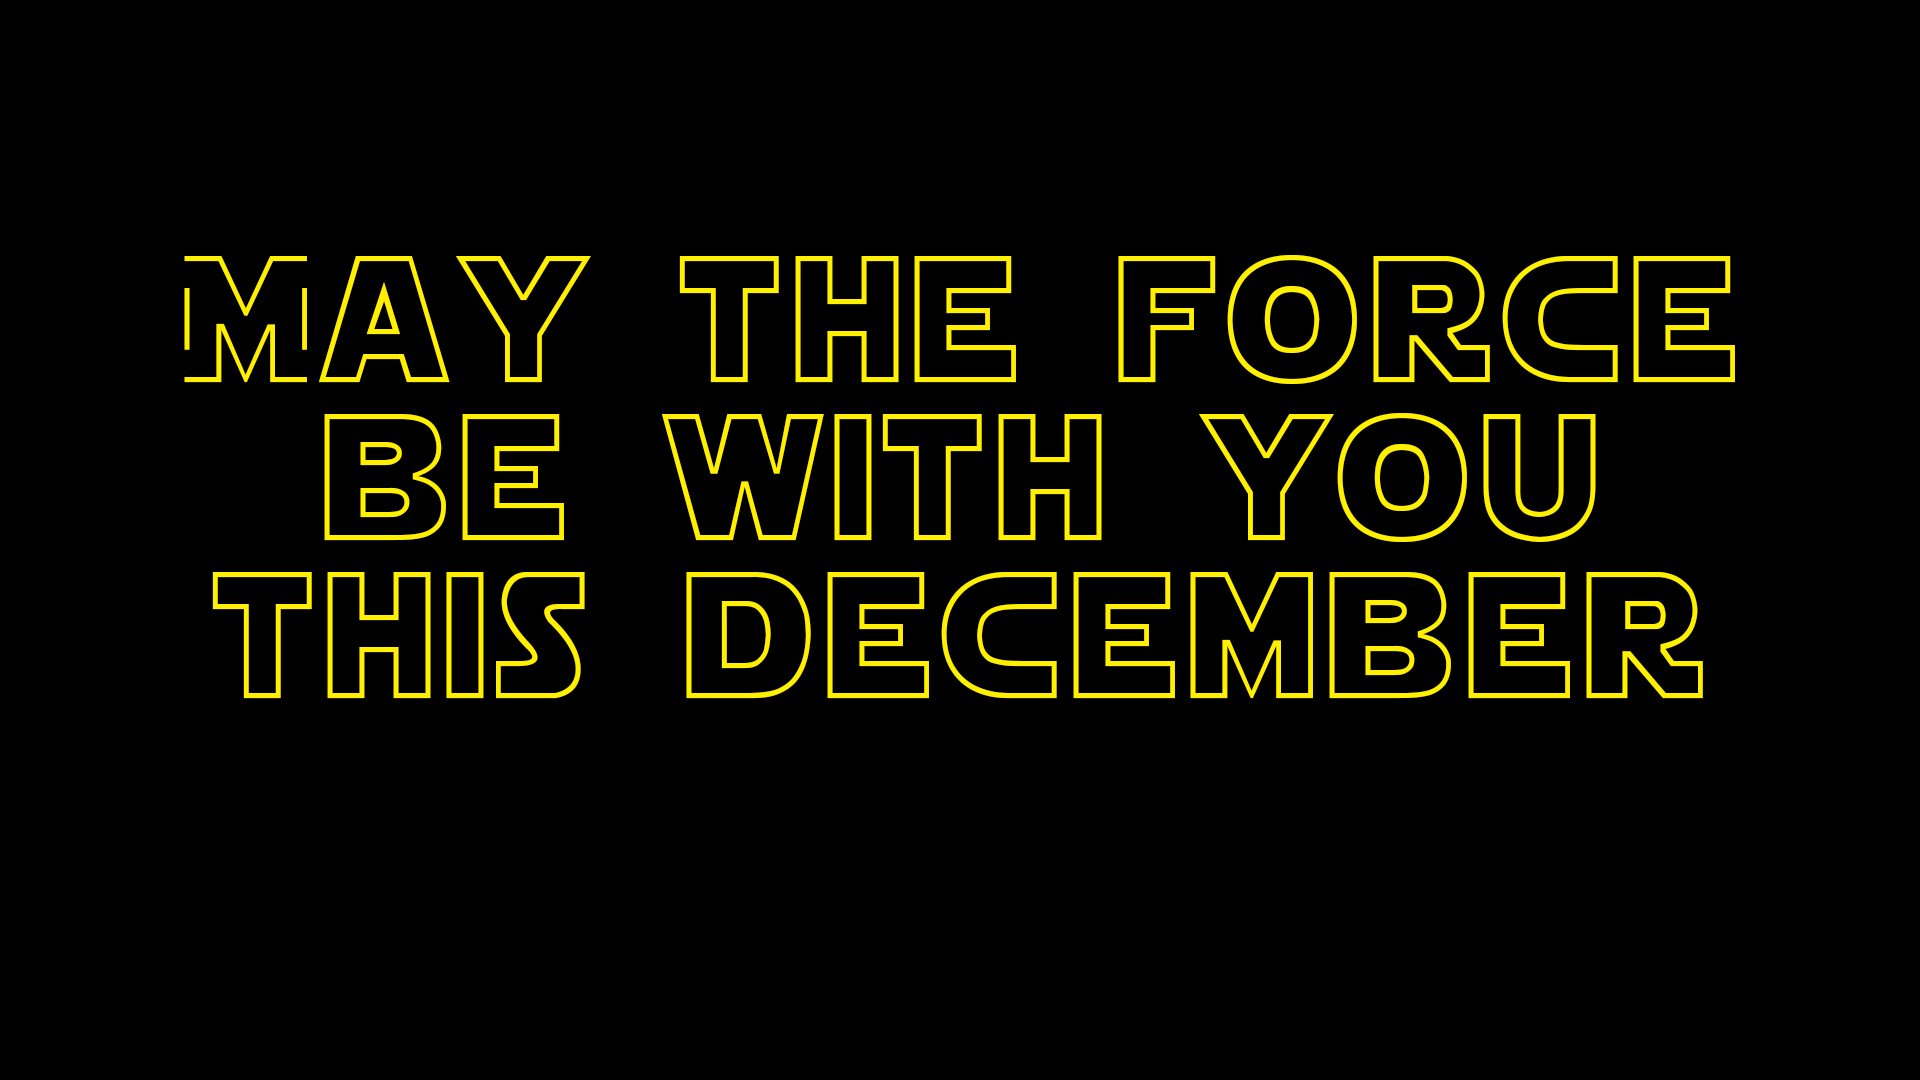 May The Force Be With You This December Imaginar